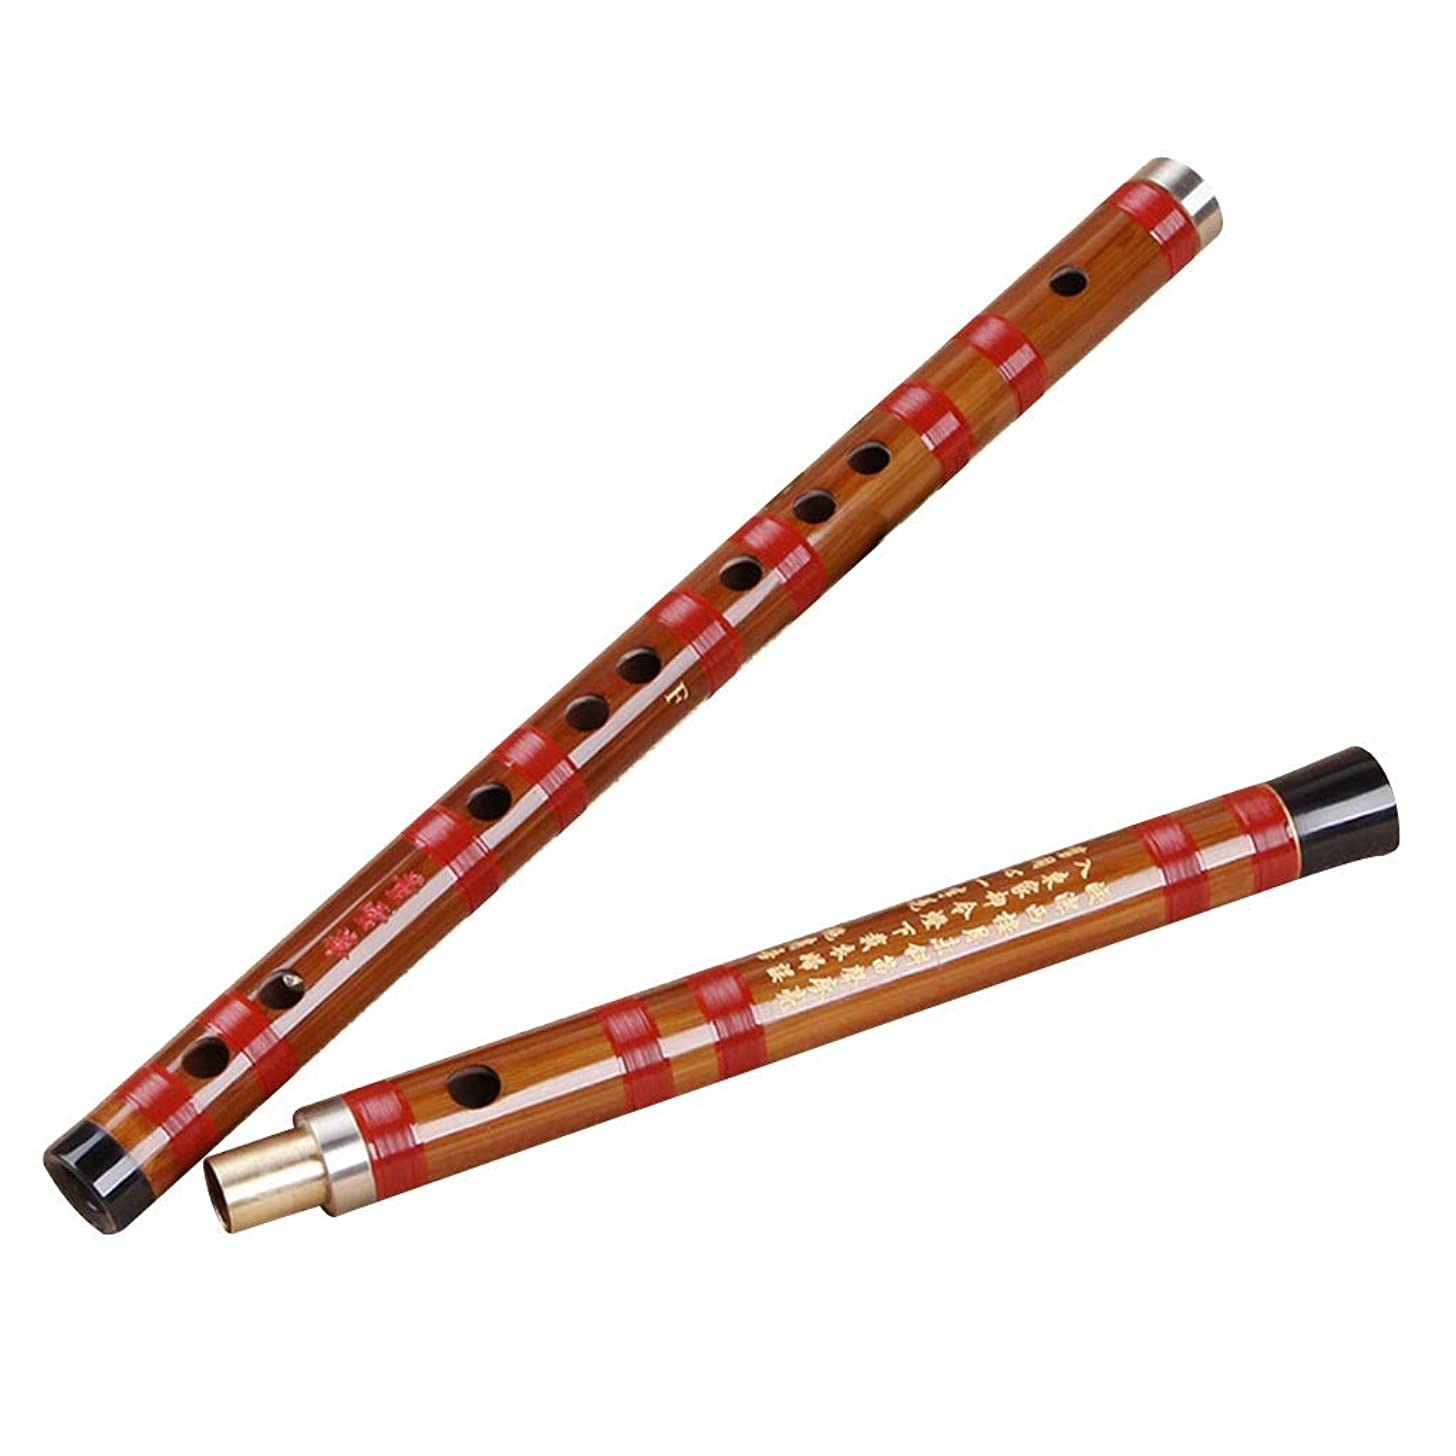 Bamboo flute Flute Beginner Flute CDEFG Five-Tone Professional Playing Flute Wooden Instruments The Best Gift Between Friends and Family Fife (Color : Brown, Size : C key682.62.6cm)